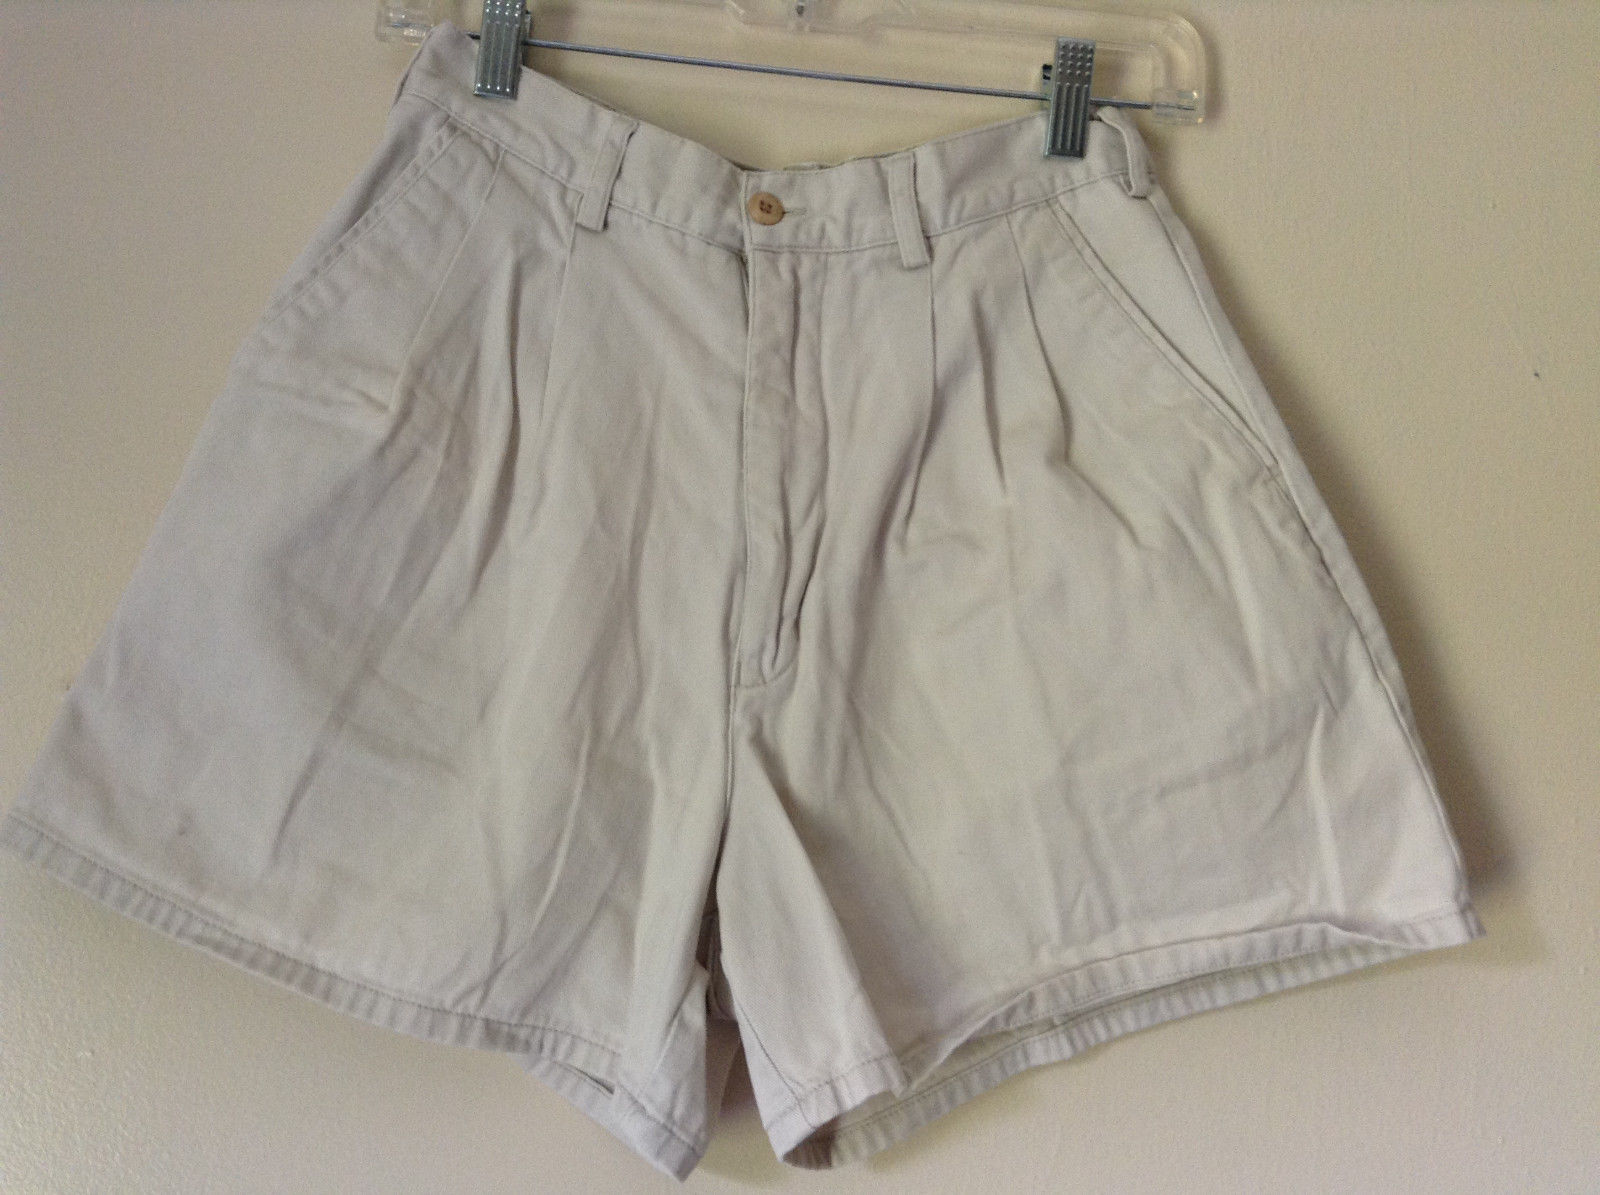 White Shorts by Eastern Mountain Sports EMS 100 Percent Cotton Size 8